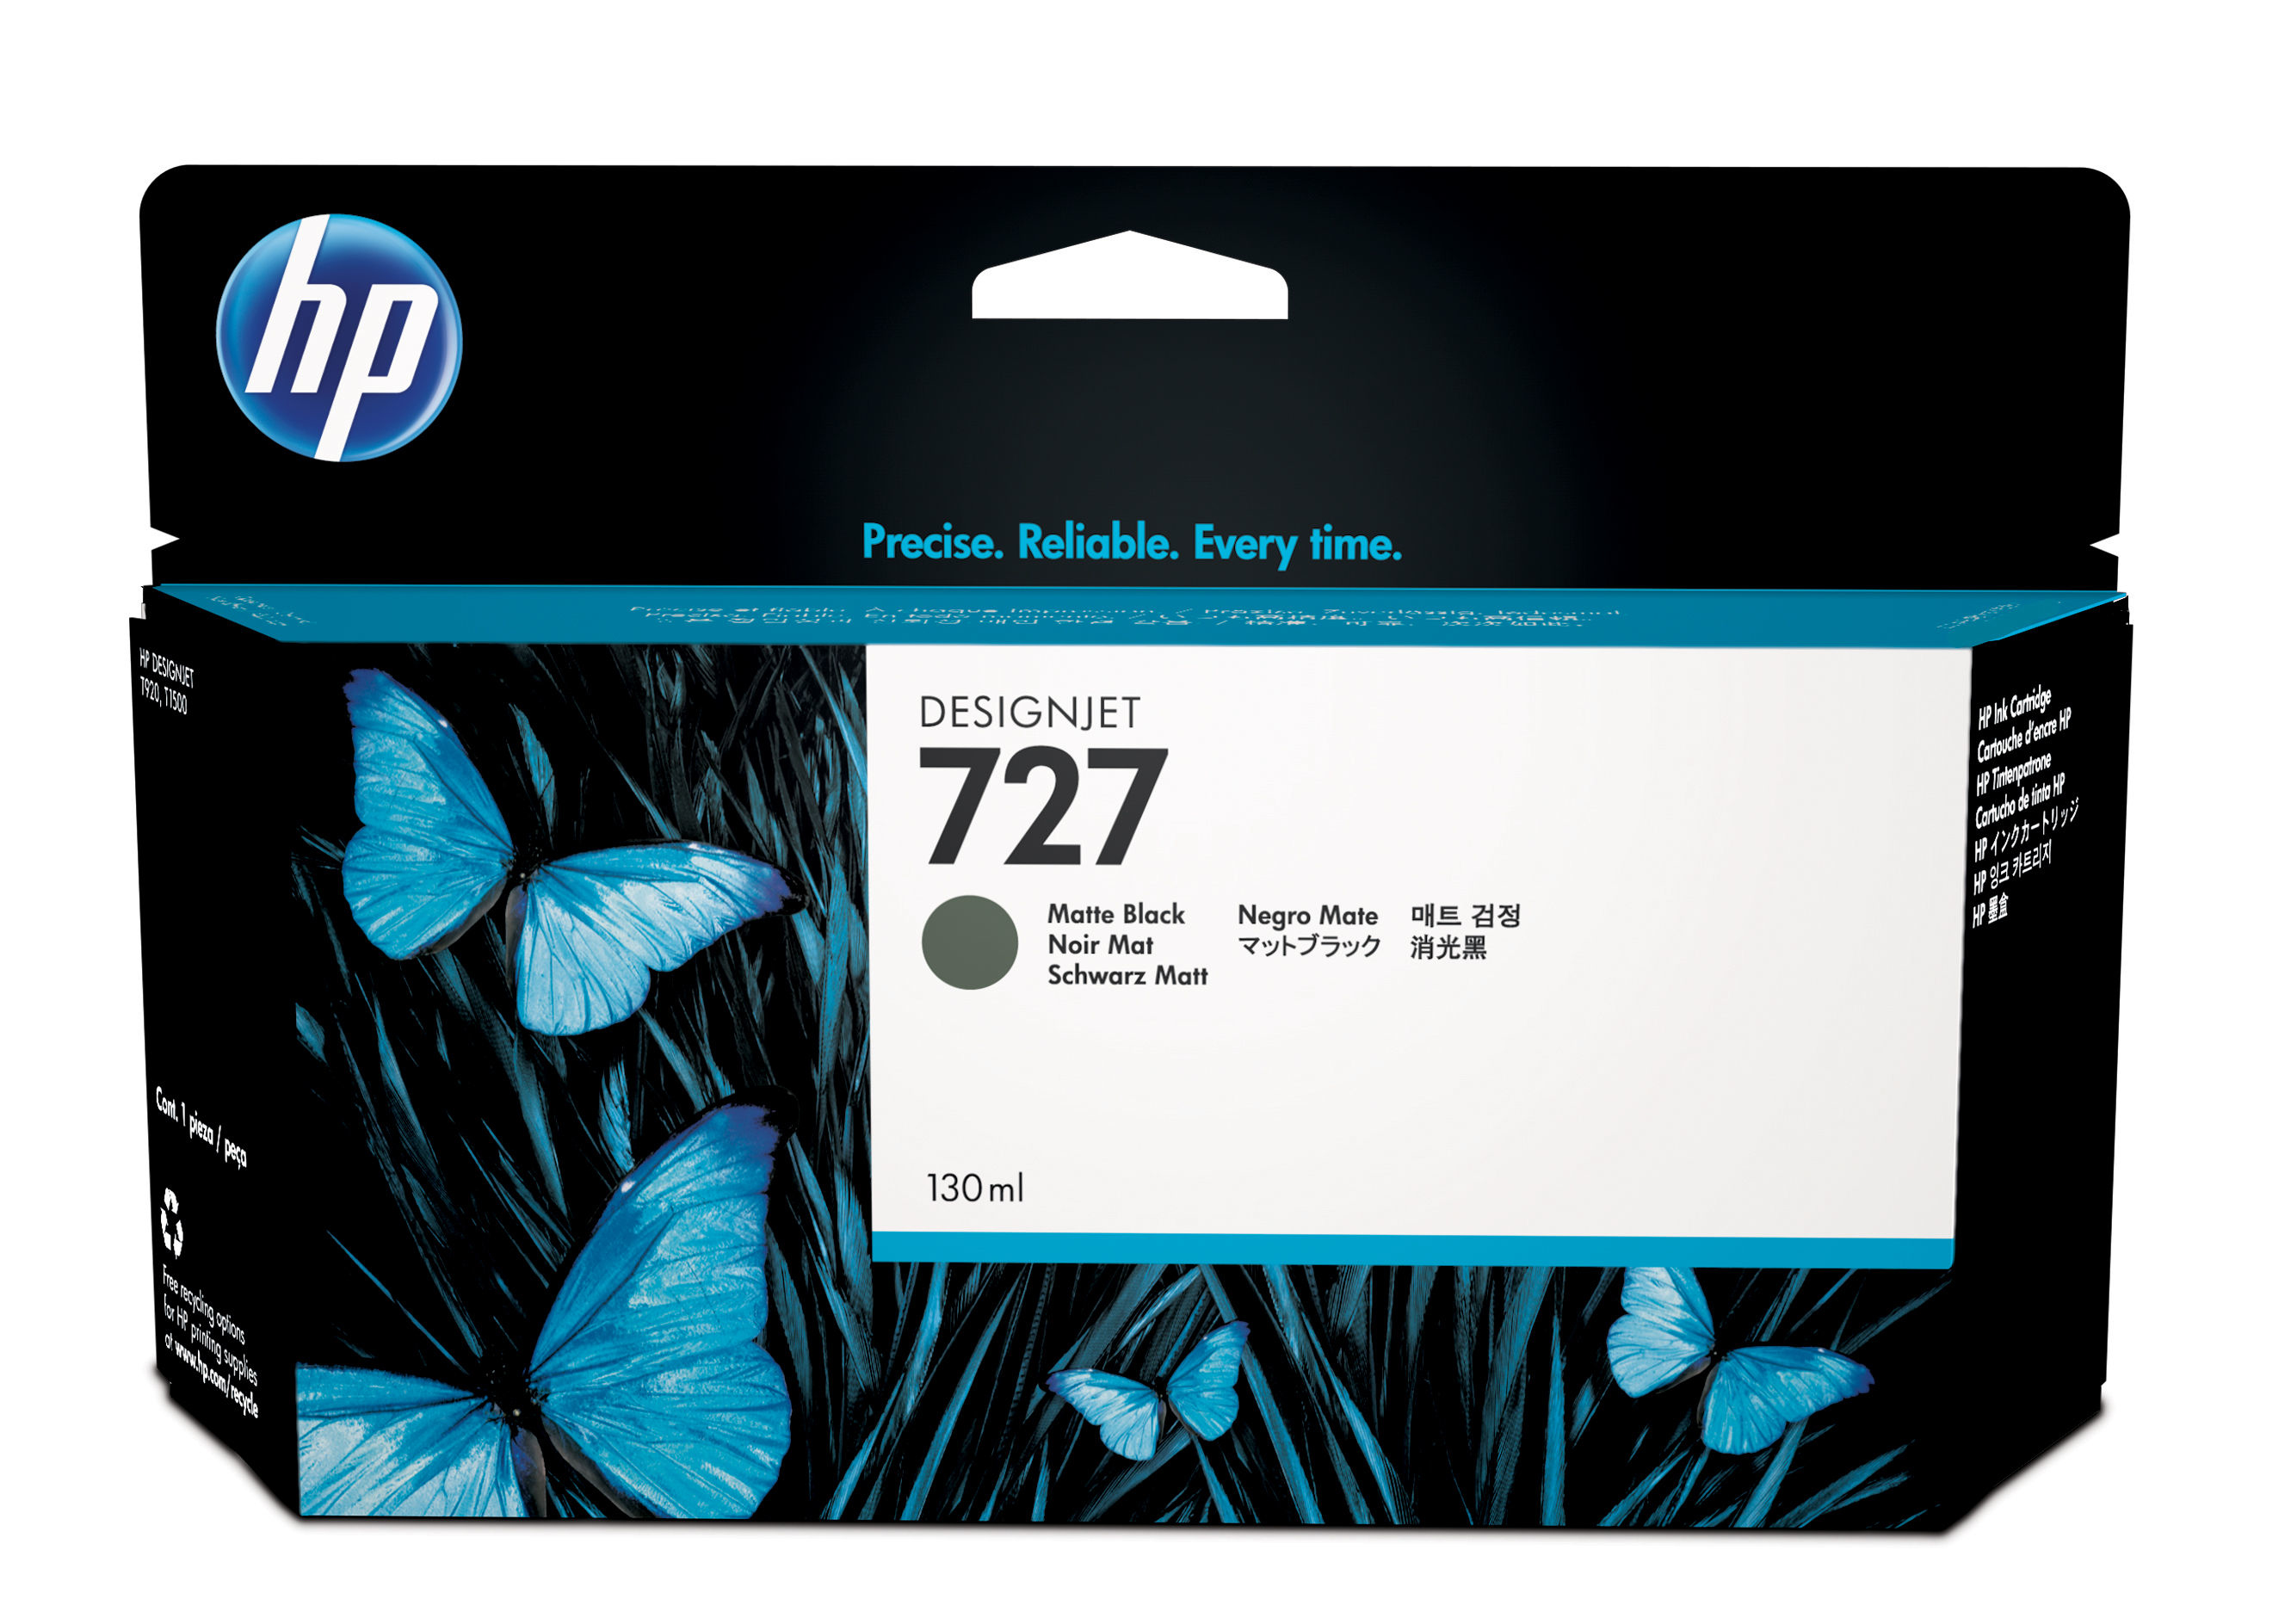 HP 727 - Matte Black - Original - Ink Cartridge - For DesignJet T1500, T2500, T920 B3P22A - C2000